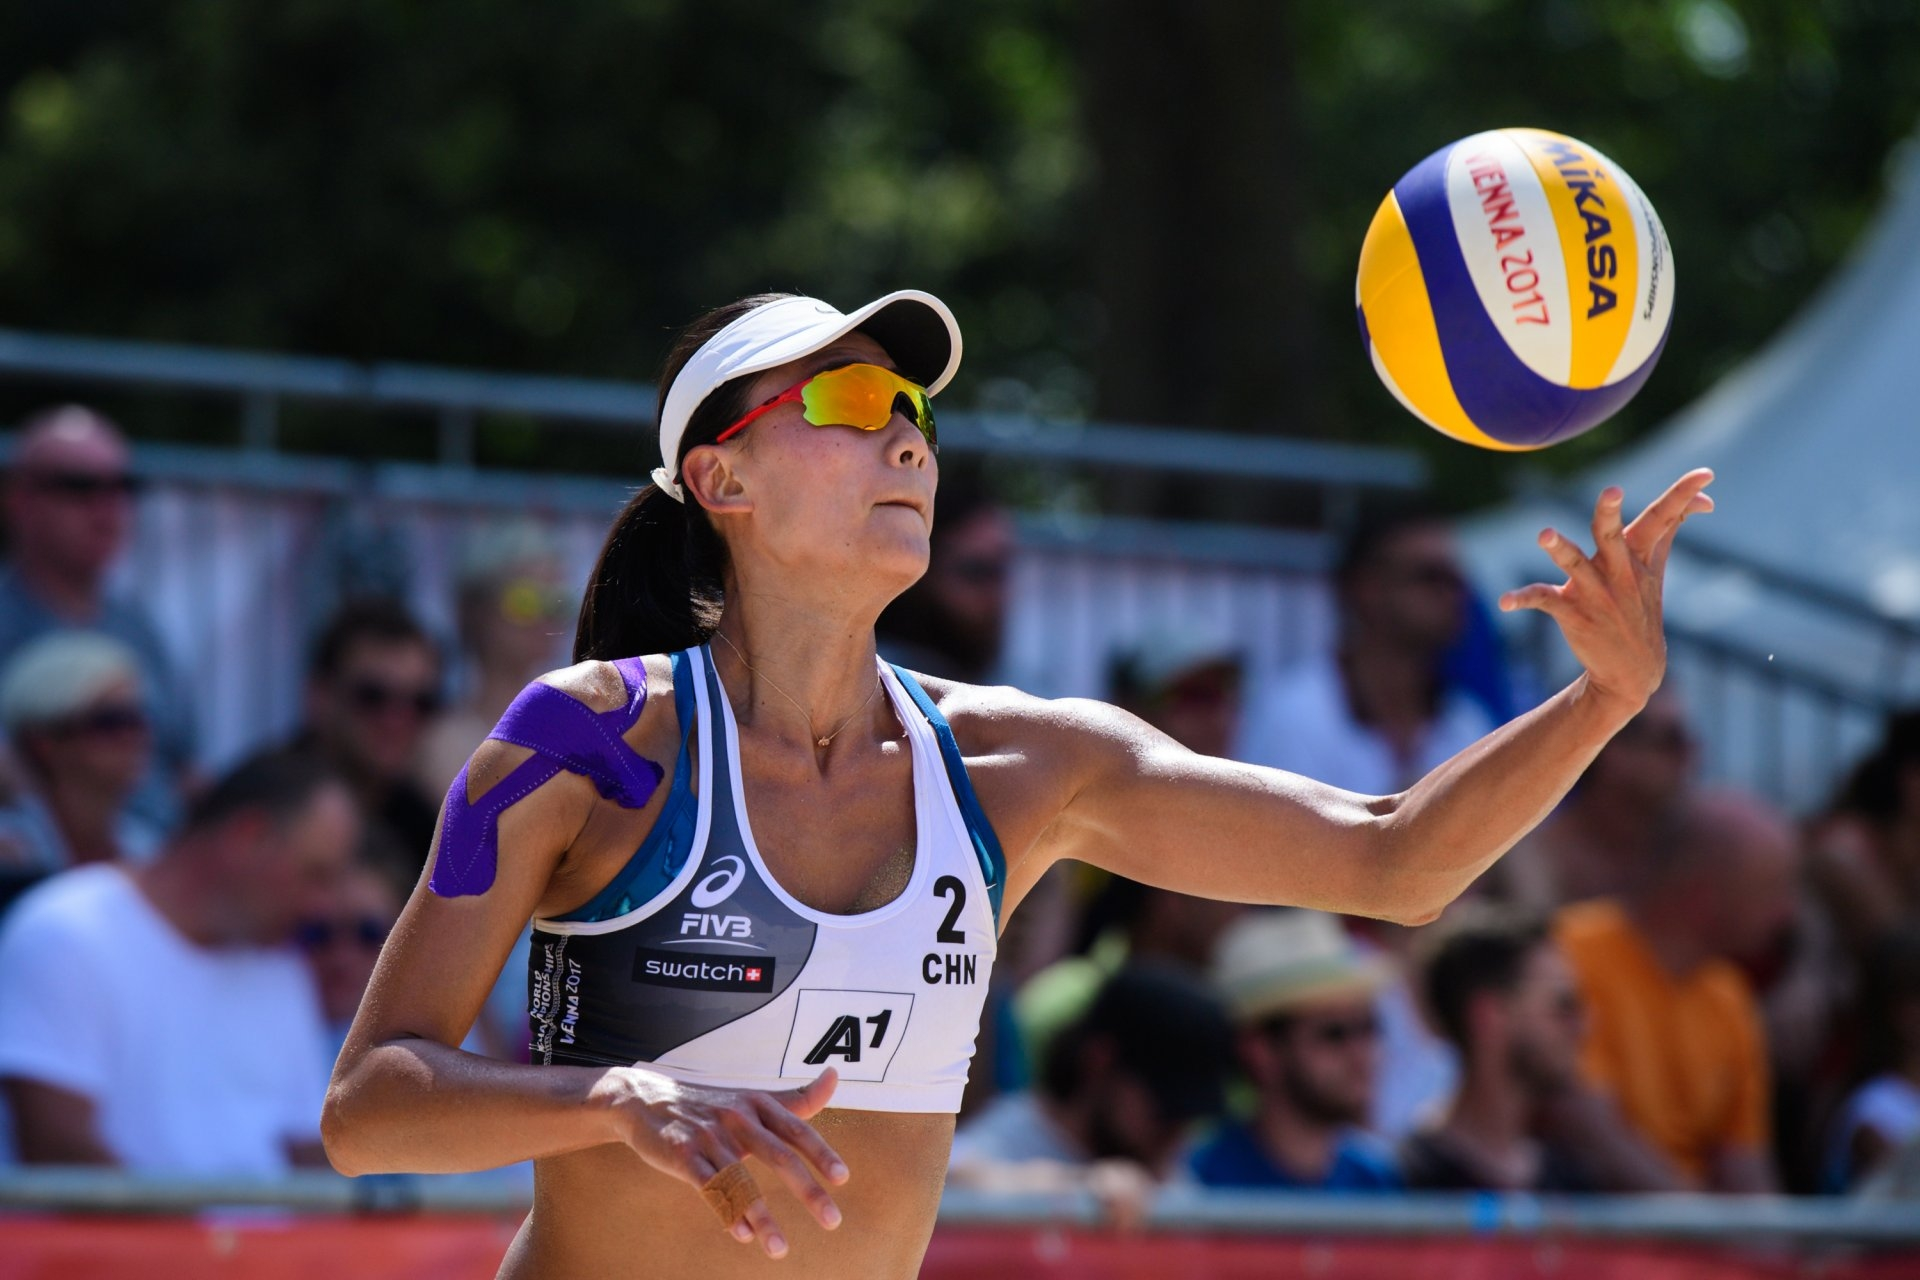 Xue is rehabbing her right shoulder, in which she had surgery in 2015 (Photocredit: FIVB)